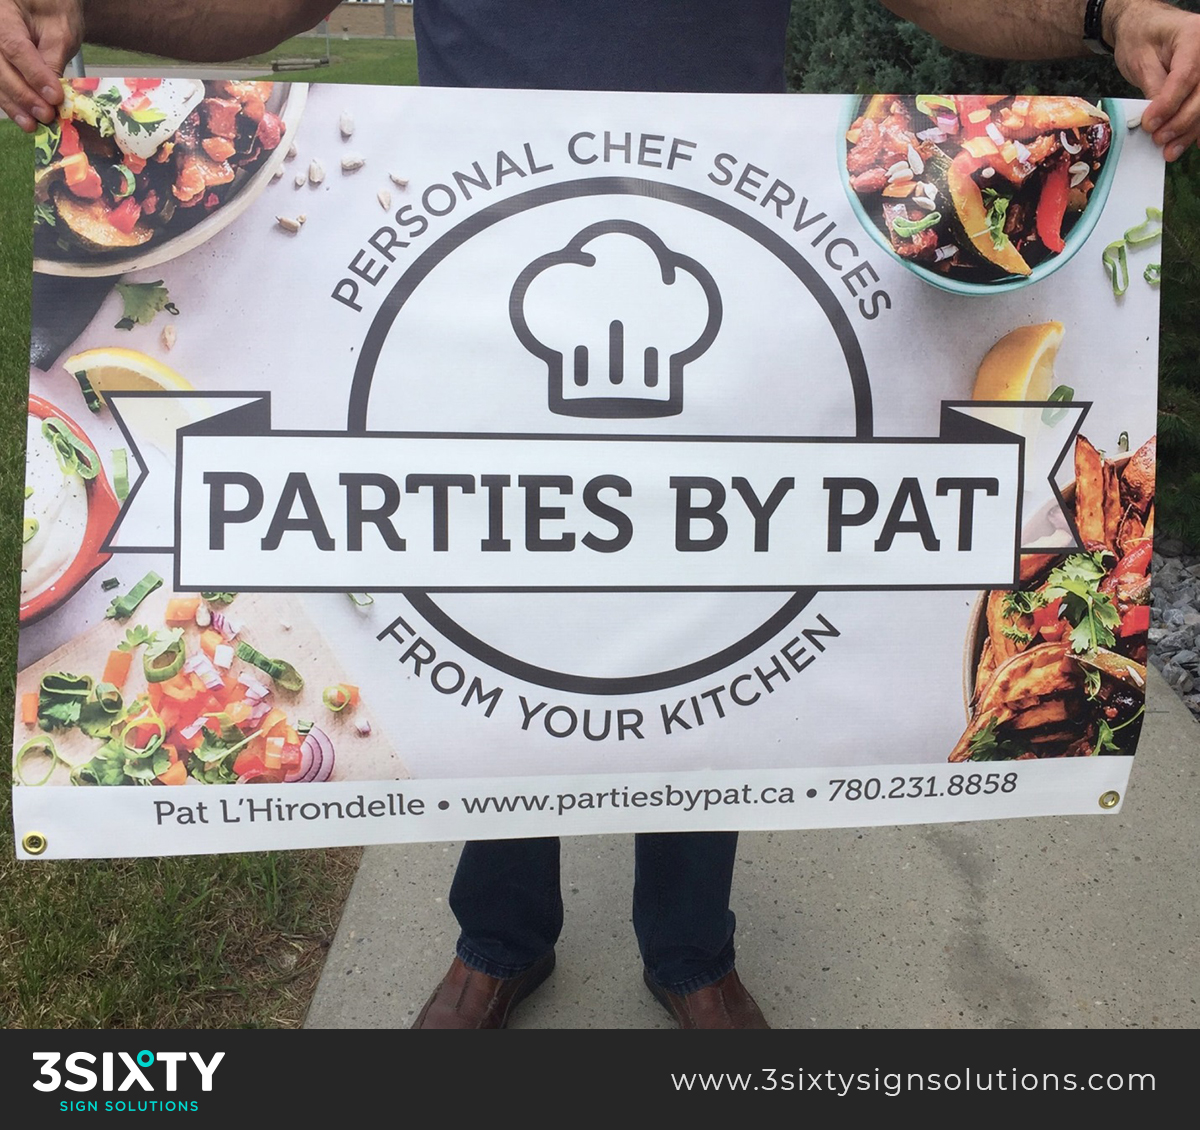 Parties By Pat Custom Banner Designed & Printed by 3Sixty Sign Solutions in Edmonton, AB